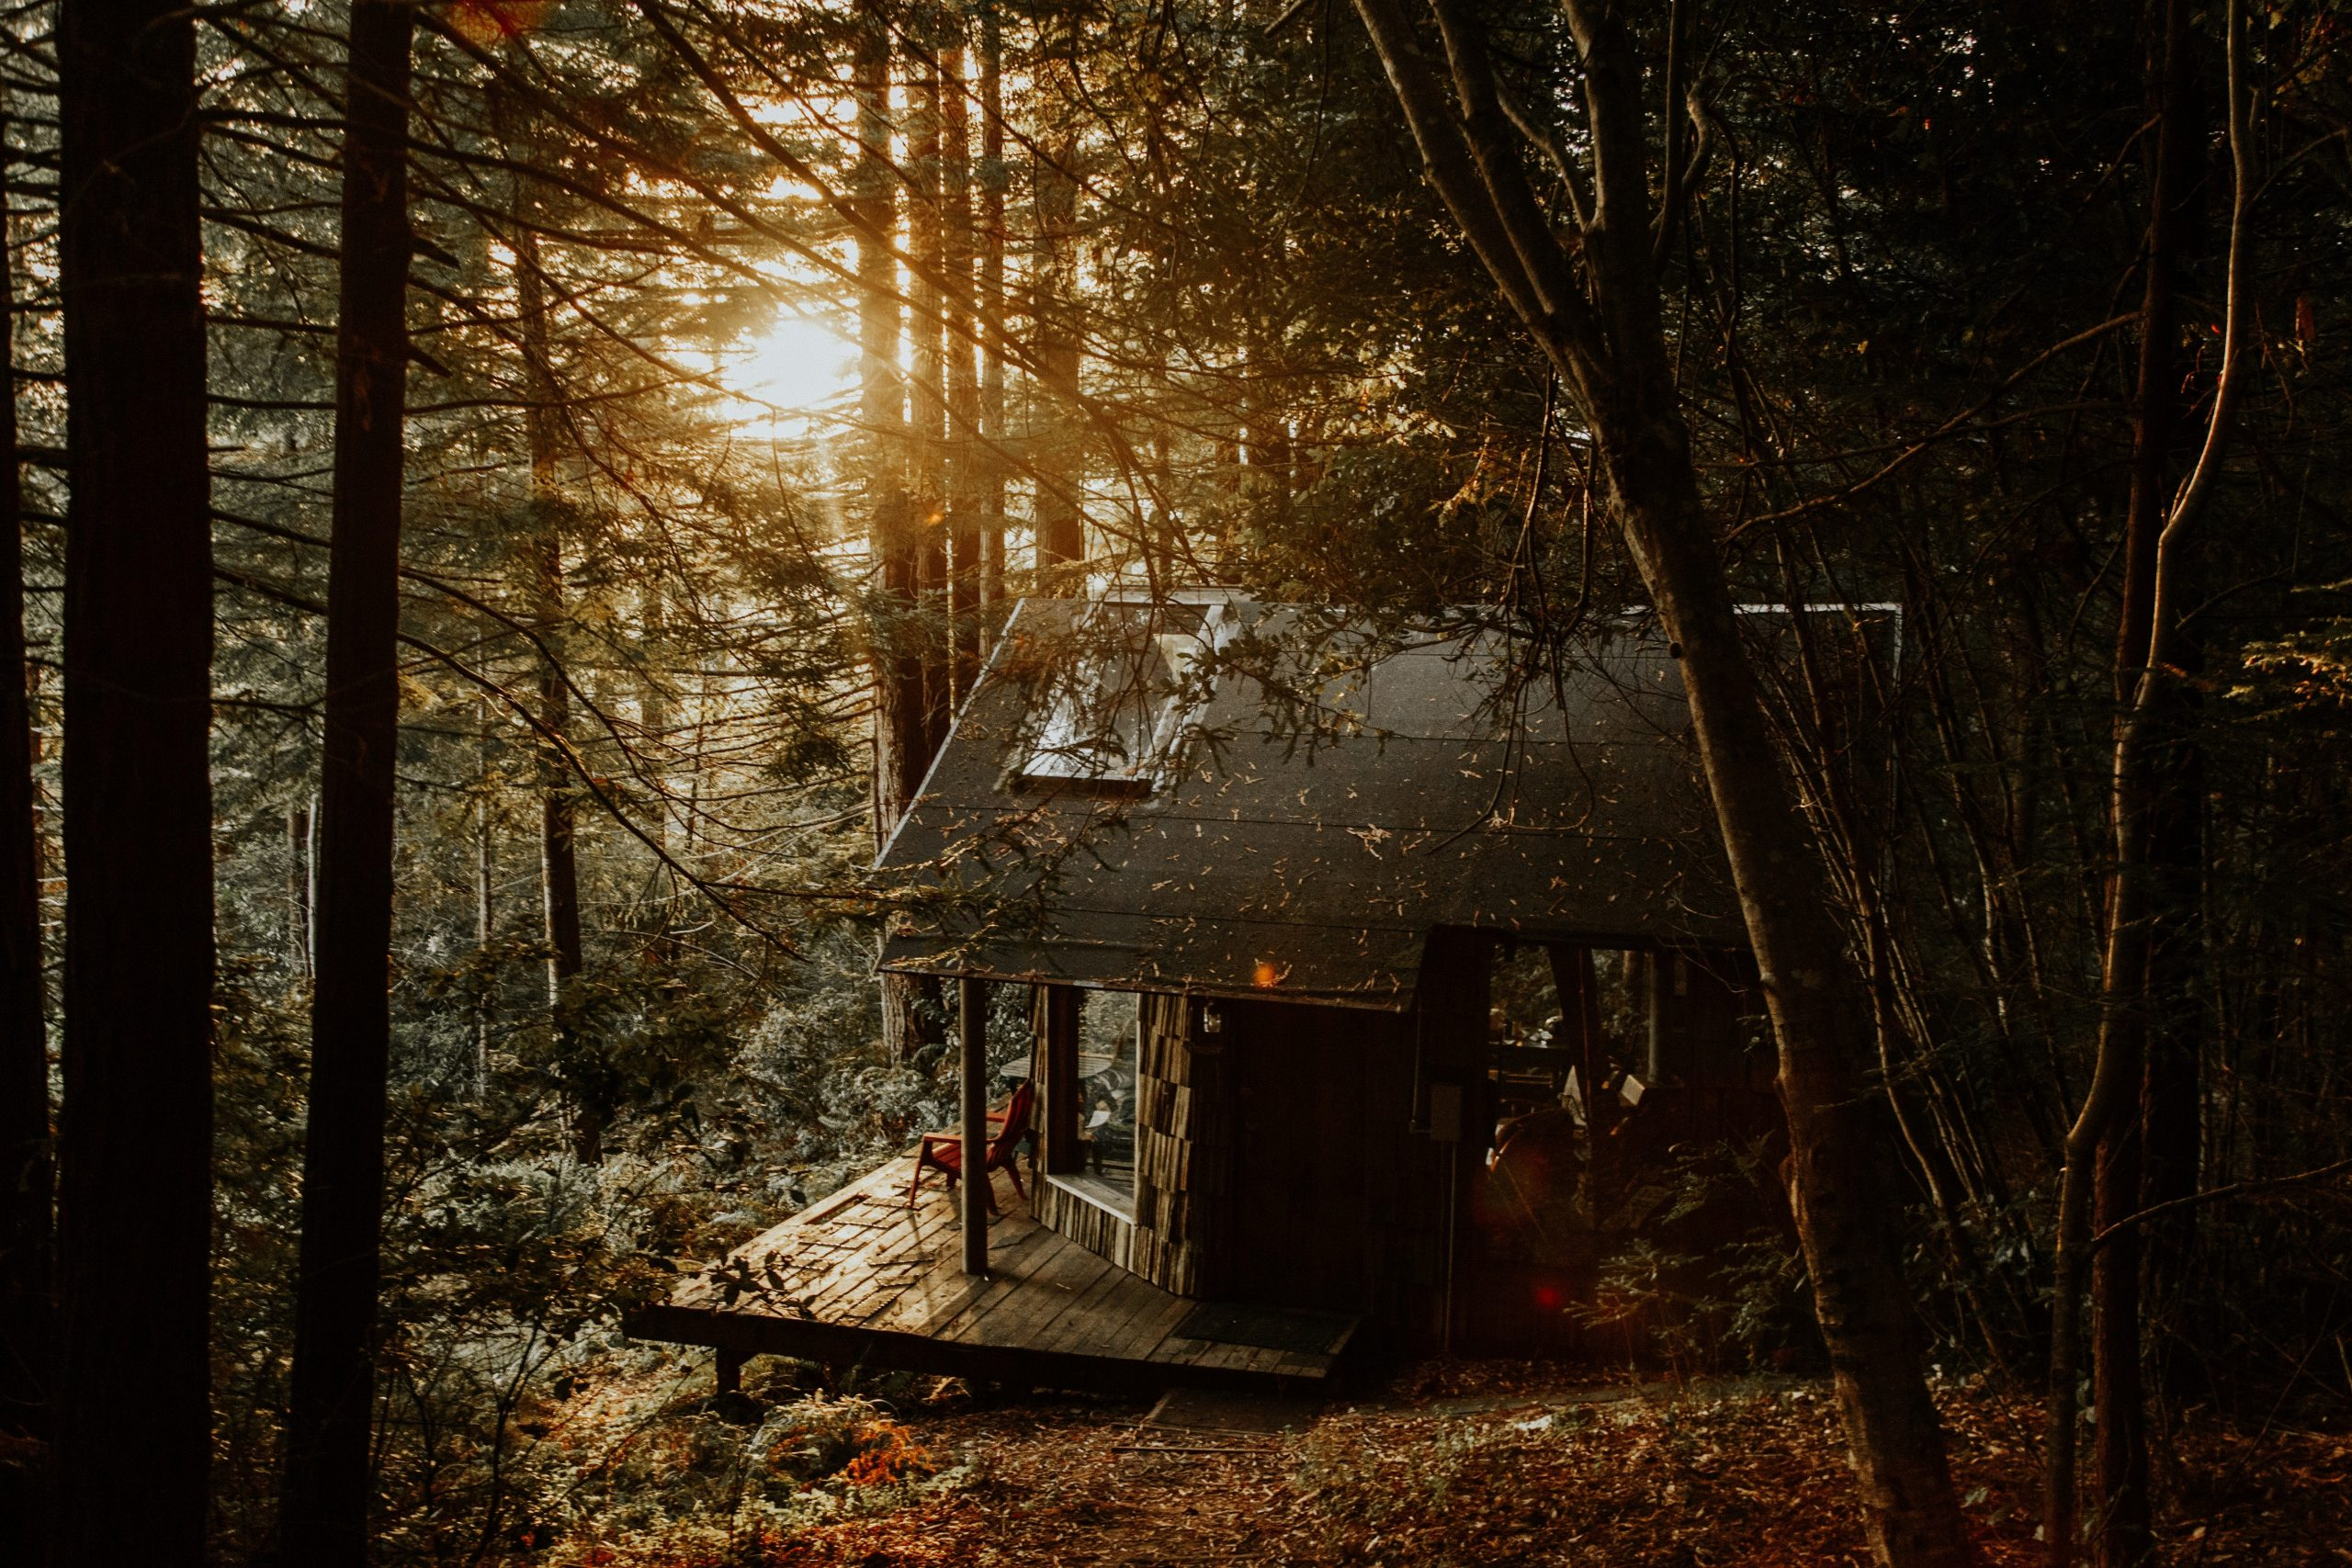 A Sanctuary in Wilderness